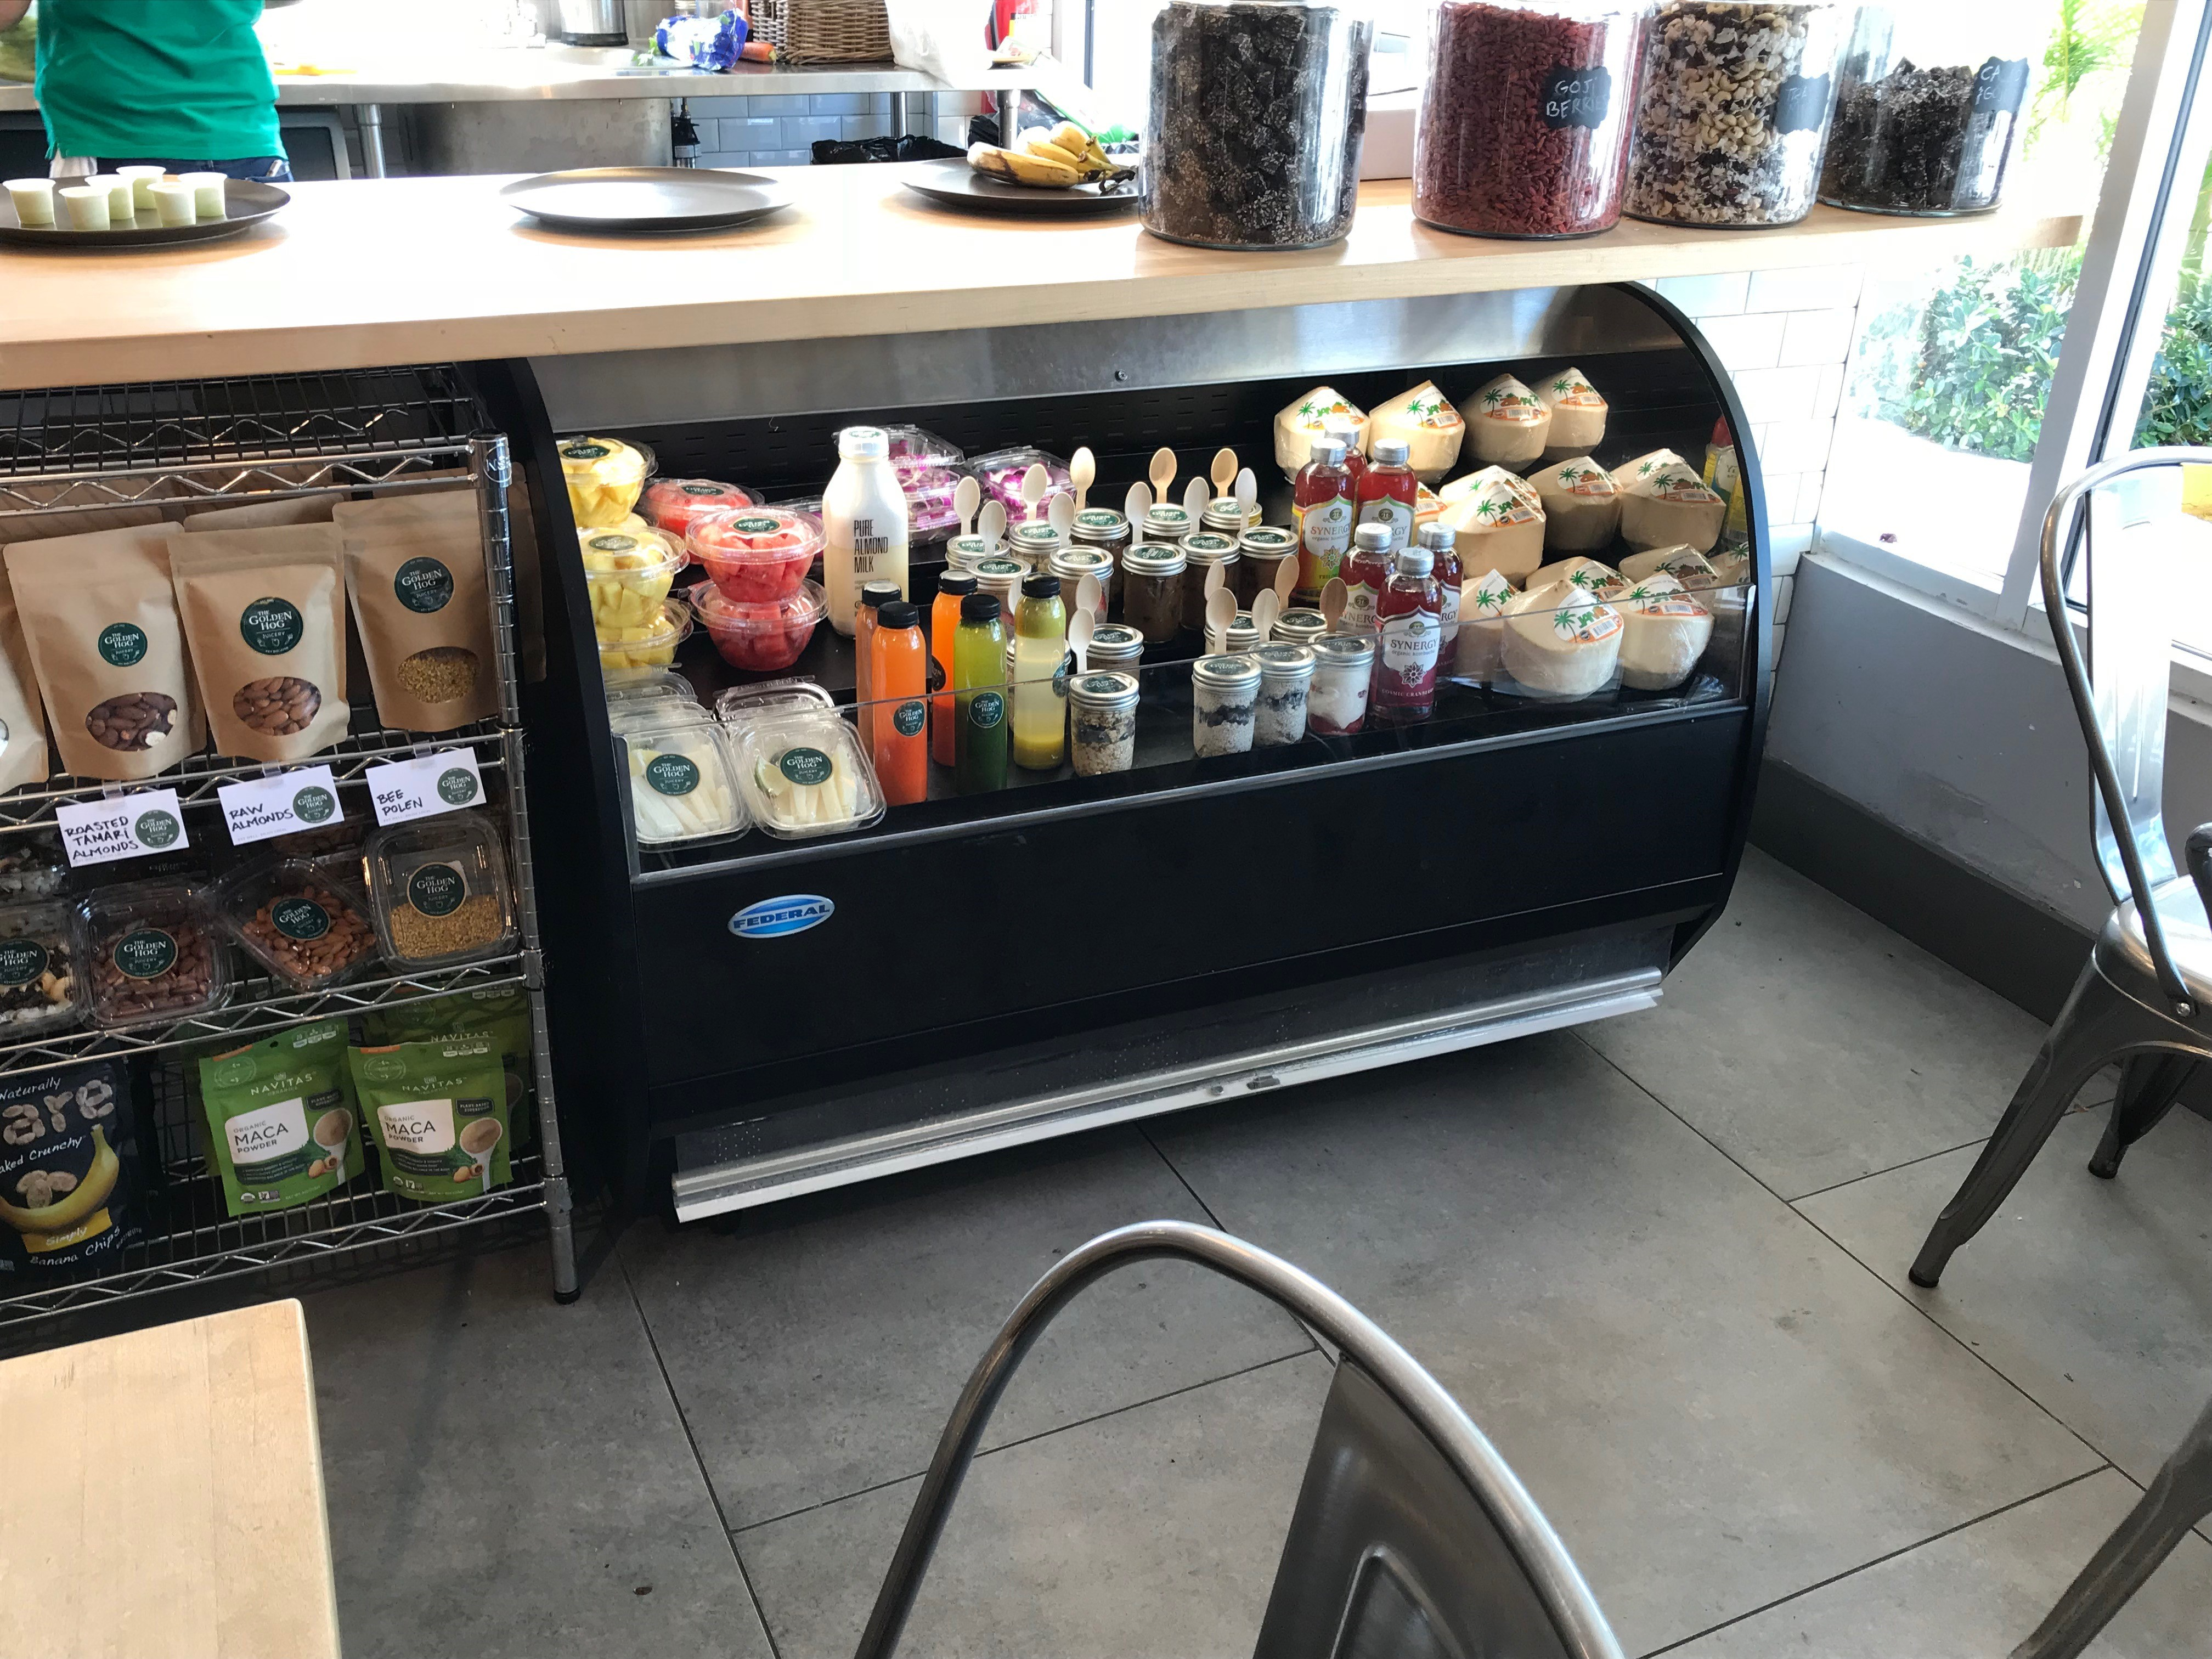 SELF-SERVE VERSATILE TOP OVER REFRIGERATED SELF SERVE